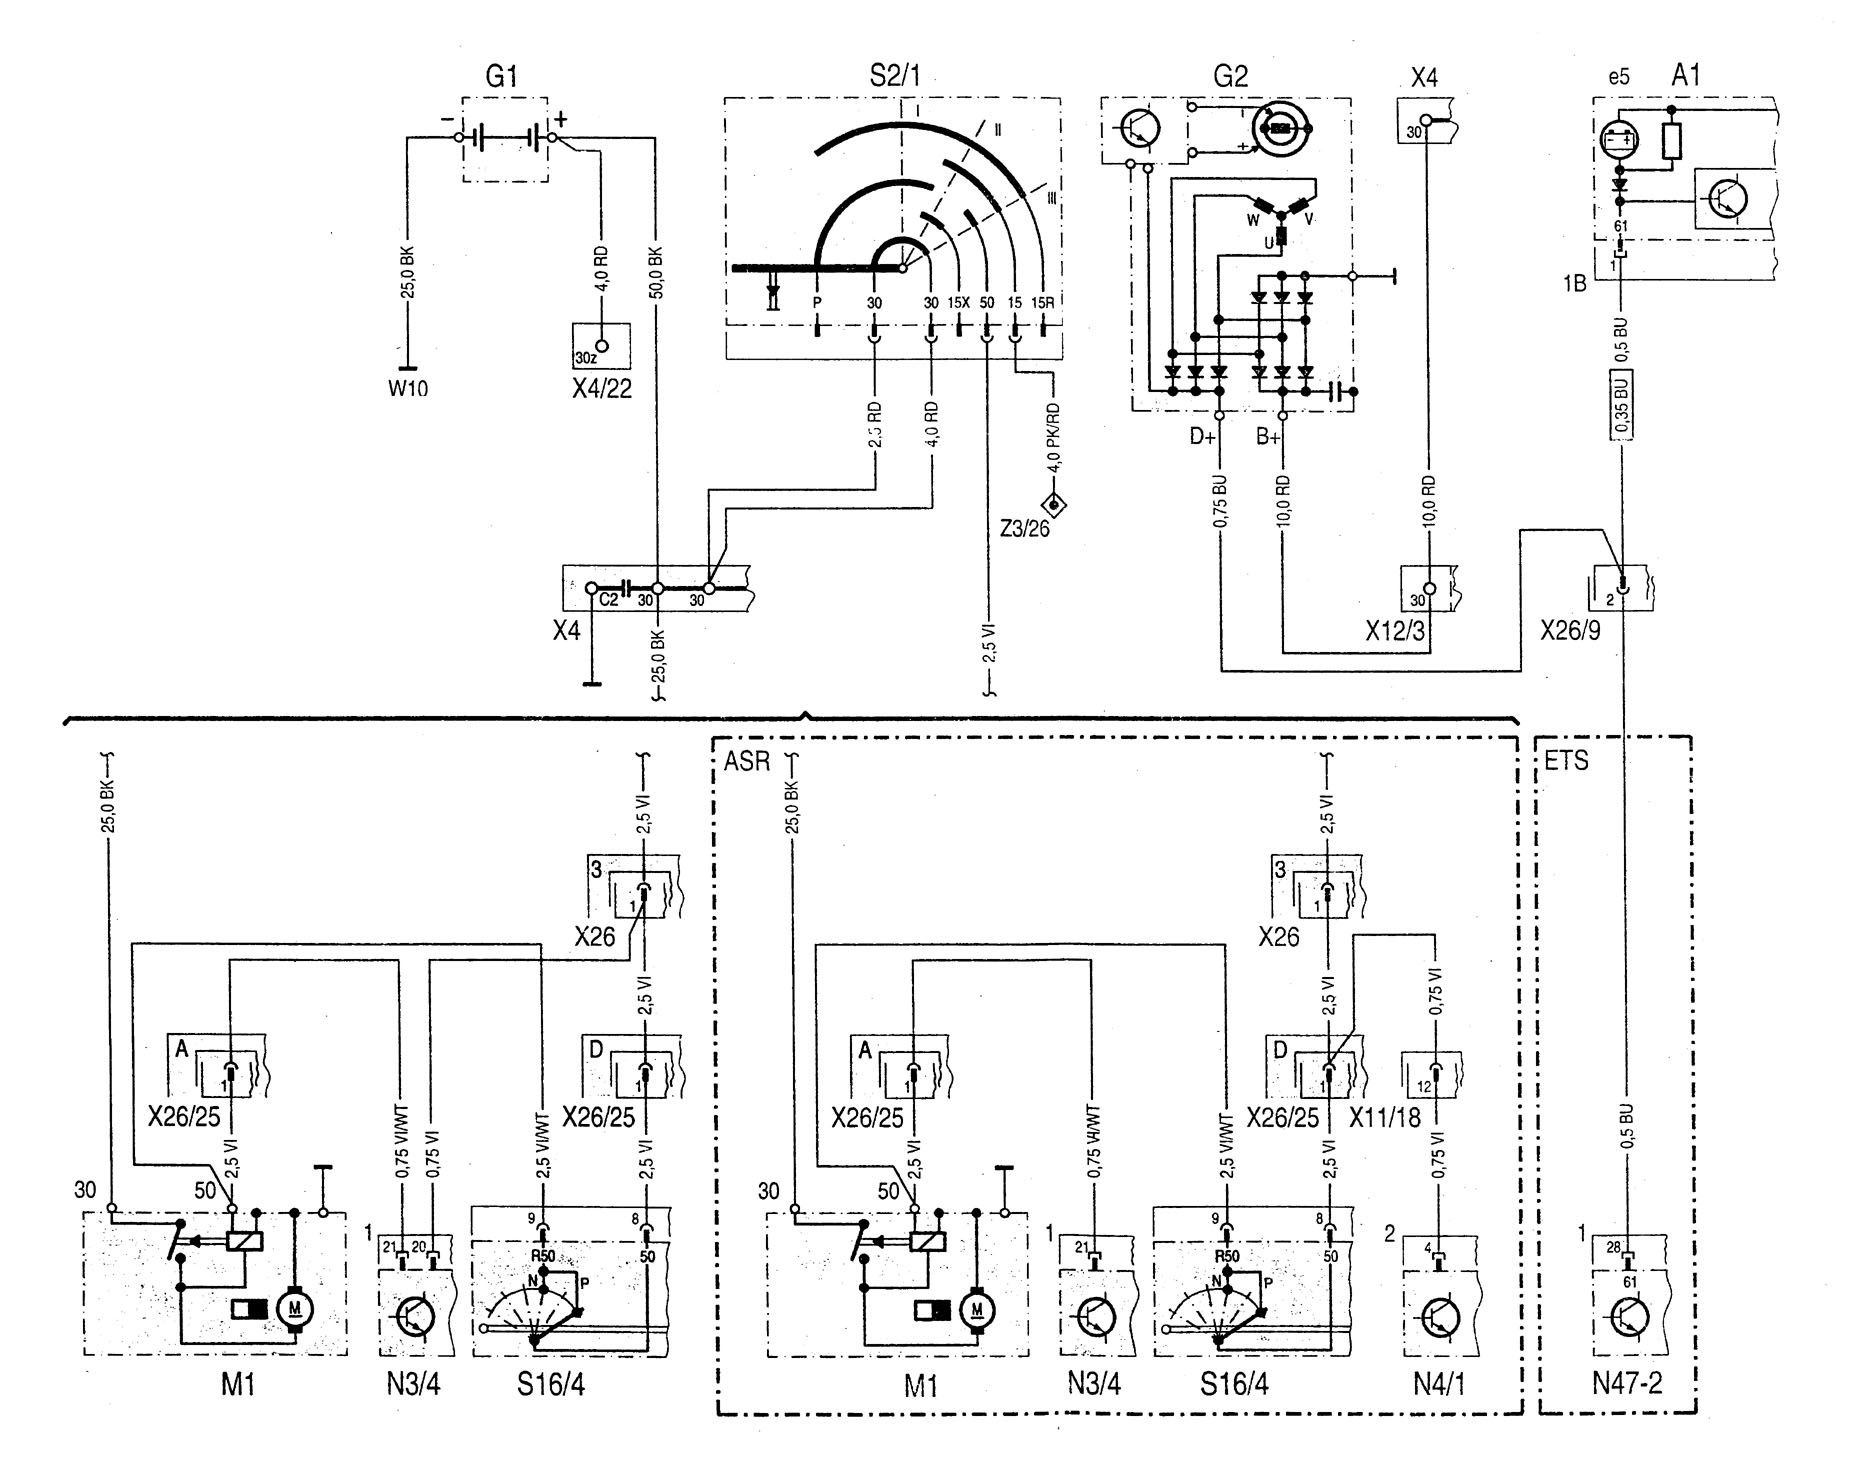 1999 c280 wiring diagram